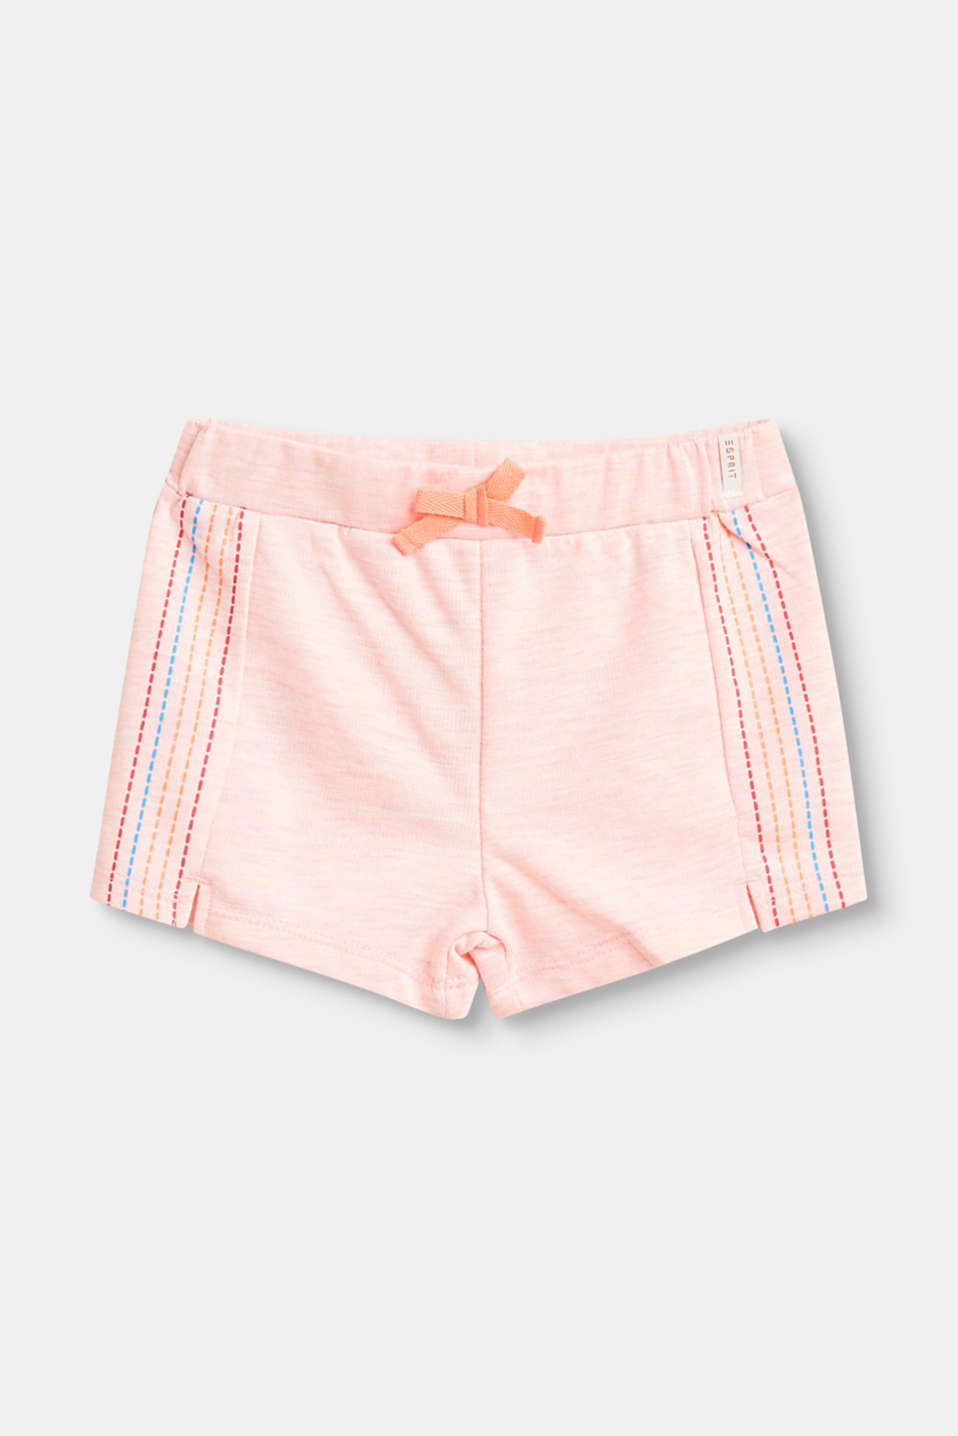 Esprit - Jersey shorts with colourful, embroidered prints